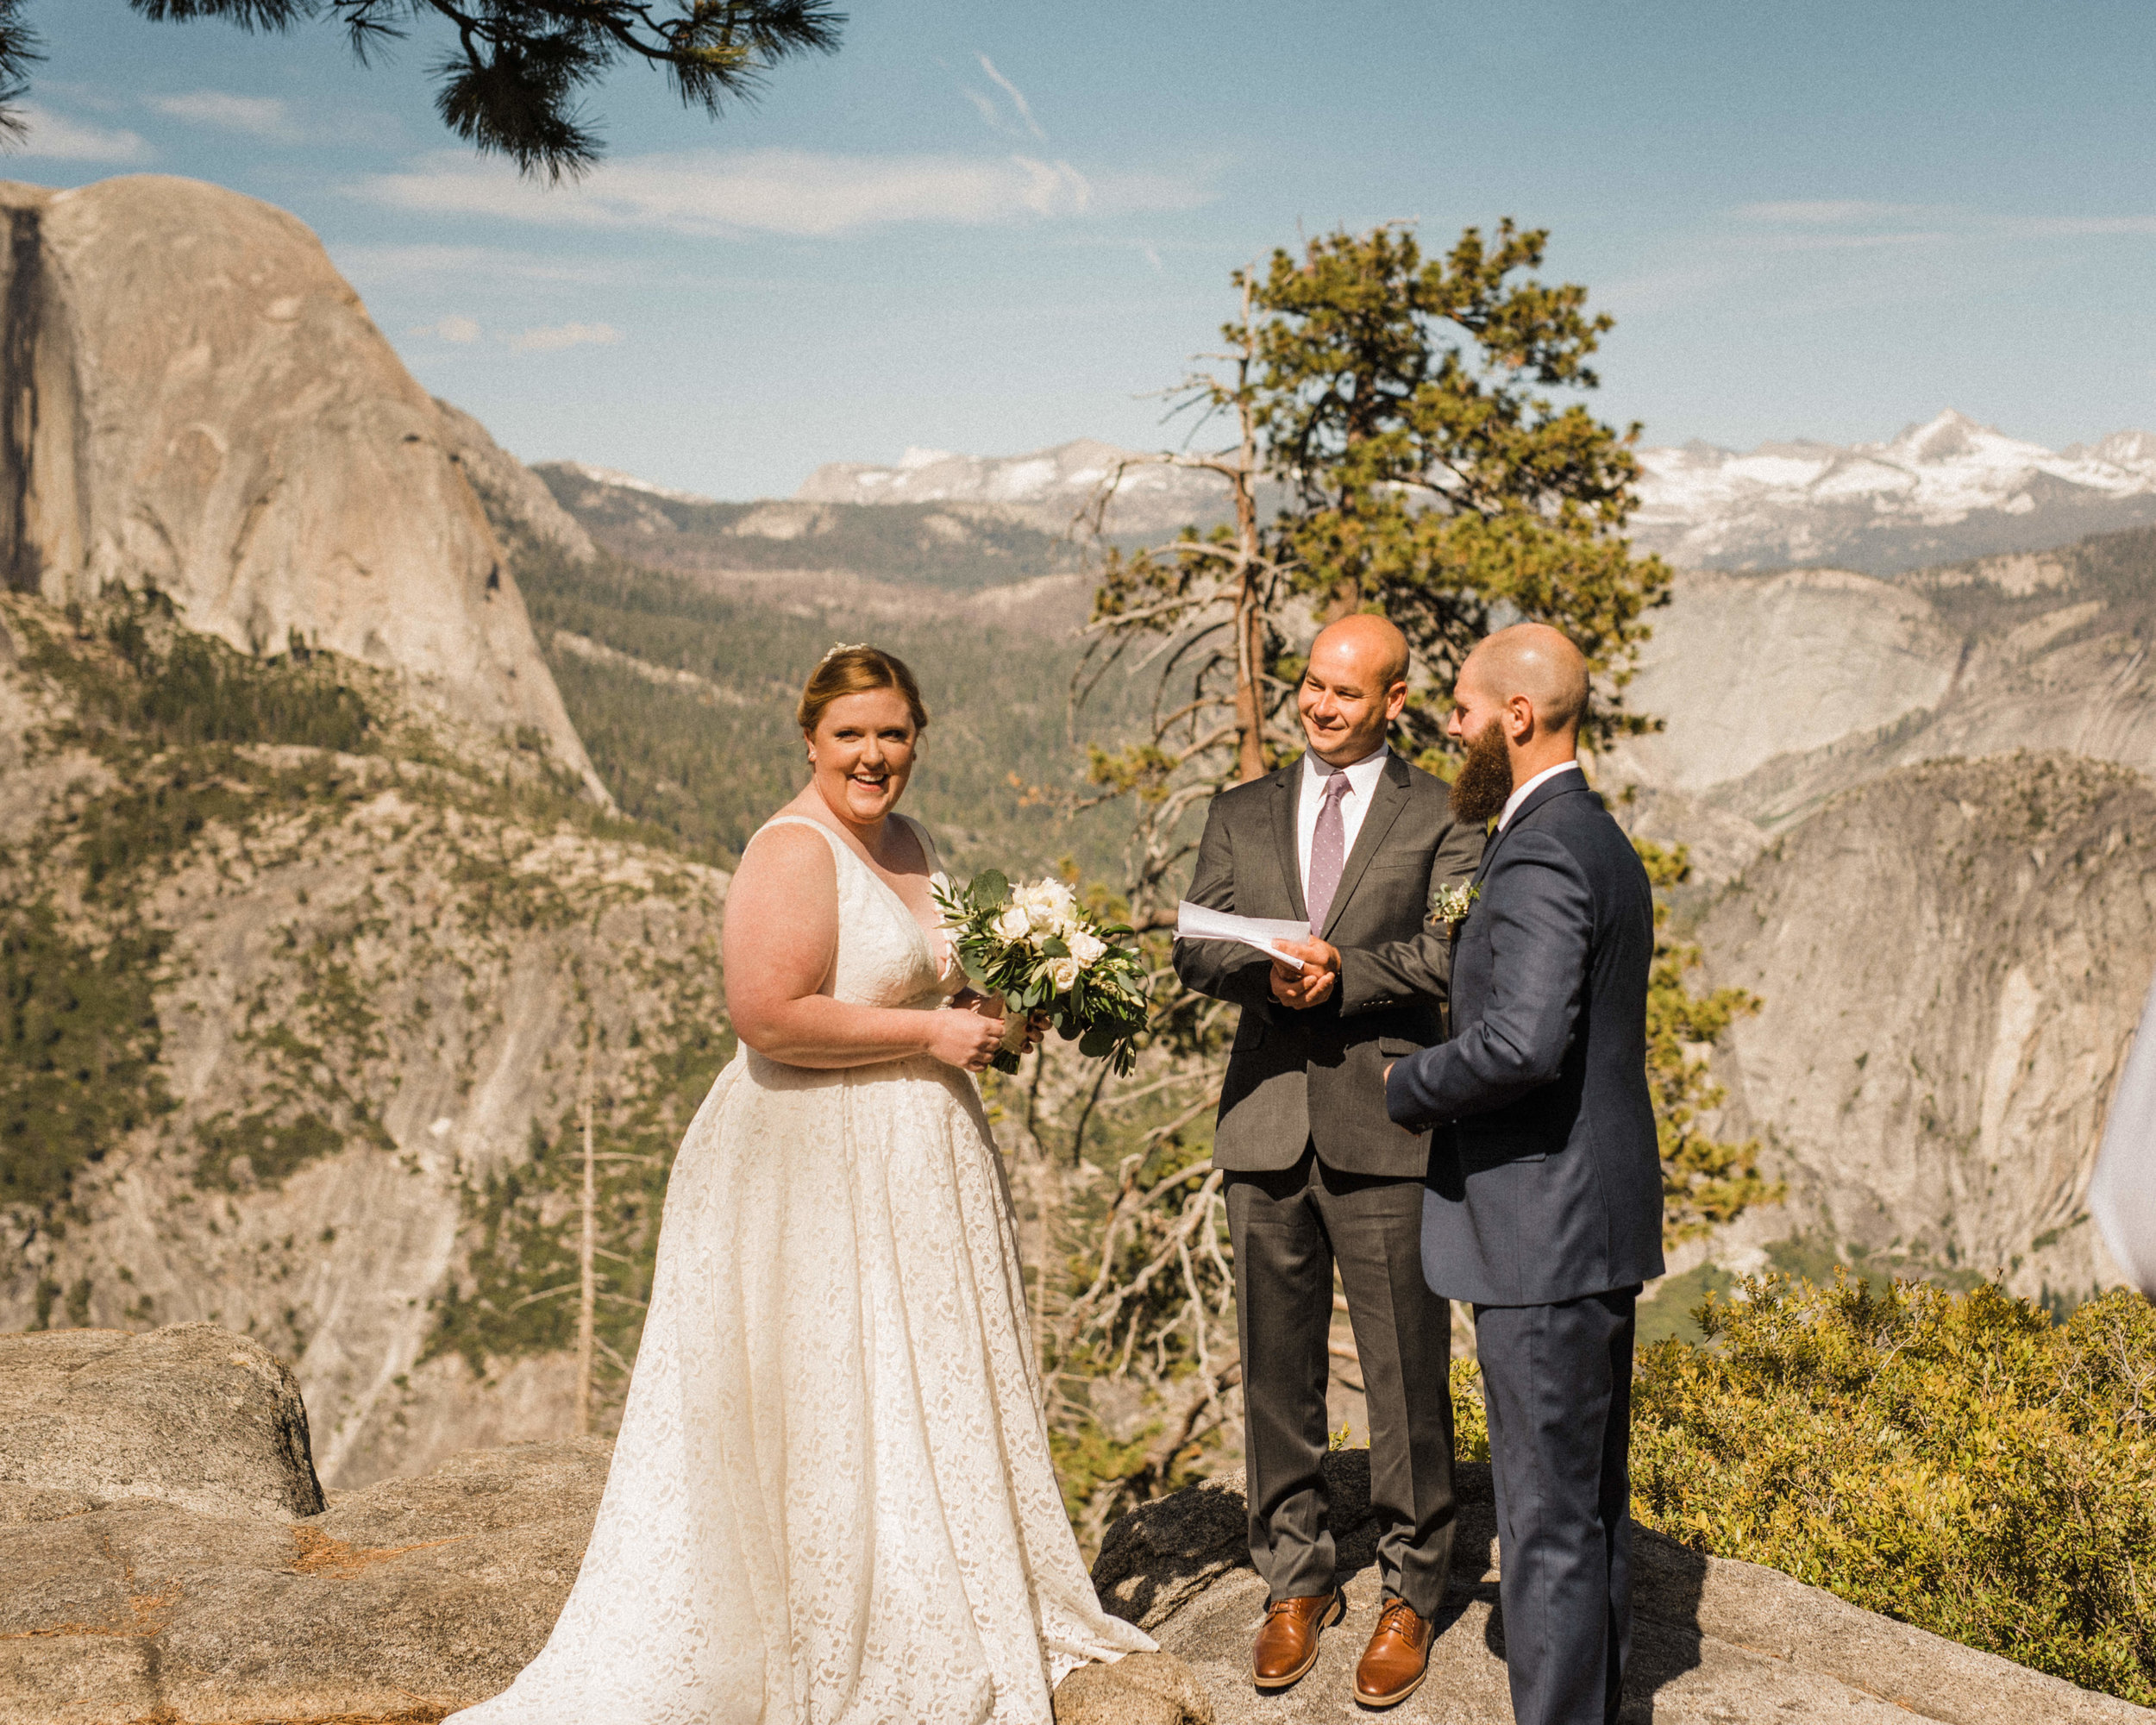 Couple and Officiant at Glacier Point Elopement in Yosemite National Park